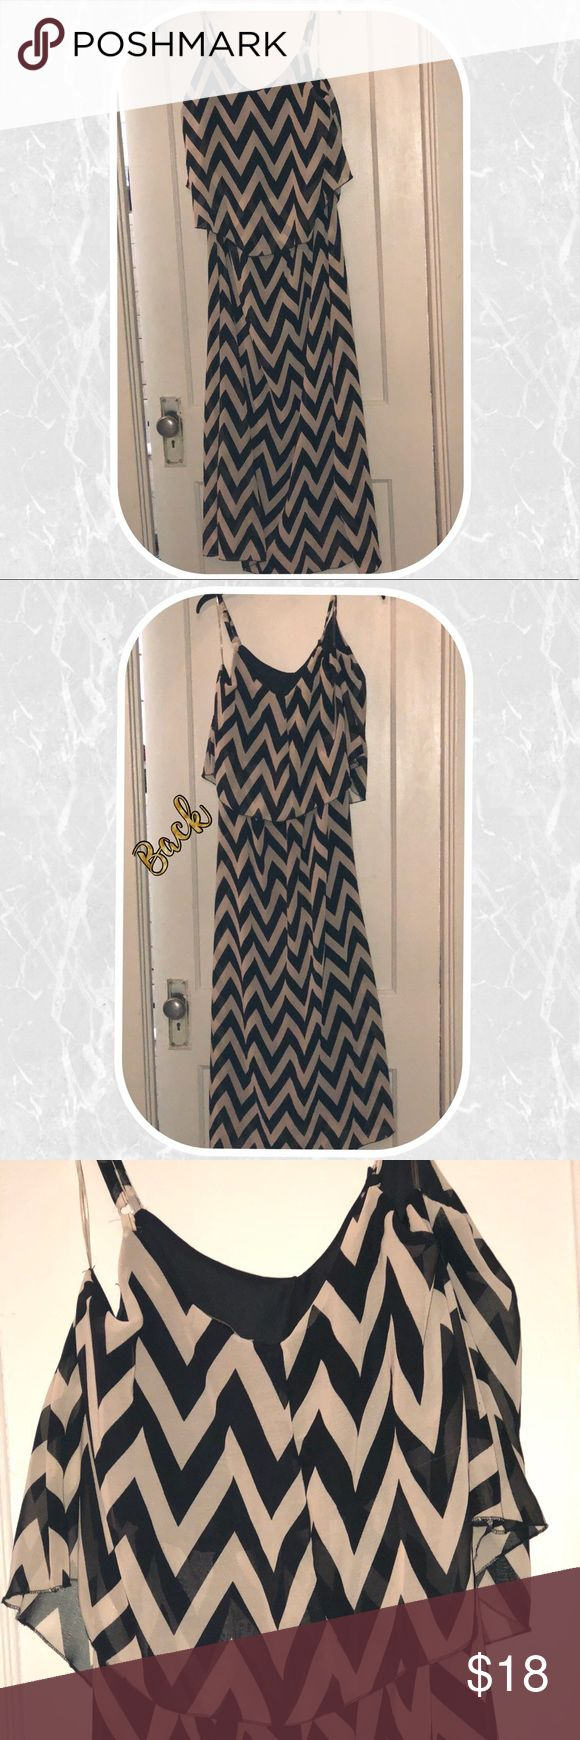 """⚡️BOGO 1/2 OFF⚡️STRAPLESS CHEVRON MAXI DRESS 💜 🎉HOST PICK: EVERYTHING PLUS SIZE PARTY 12/12/17🎉  1X Brown & tan chevron print dress Strapless Ruffled bust area Black slip underneath (as shown)  A barely few runs on the dress front & back (as pictured) Very long & flowy  Worn twice, great condition   Bust: 21.5"""" Waist: 15.5"""" Length: 55"""" Magic Dresses Strapless"""